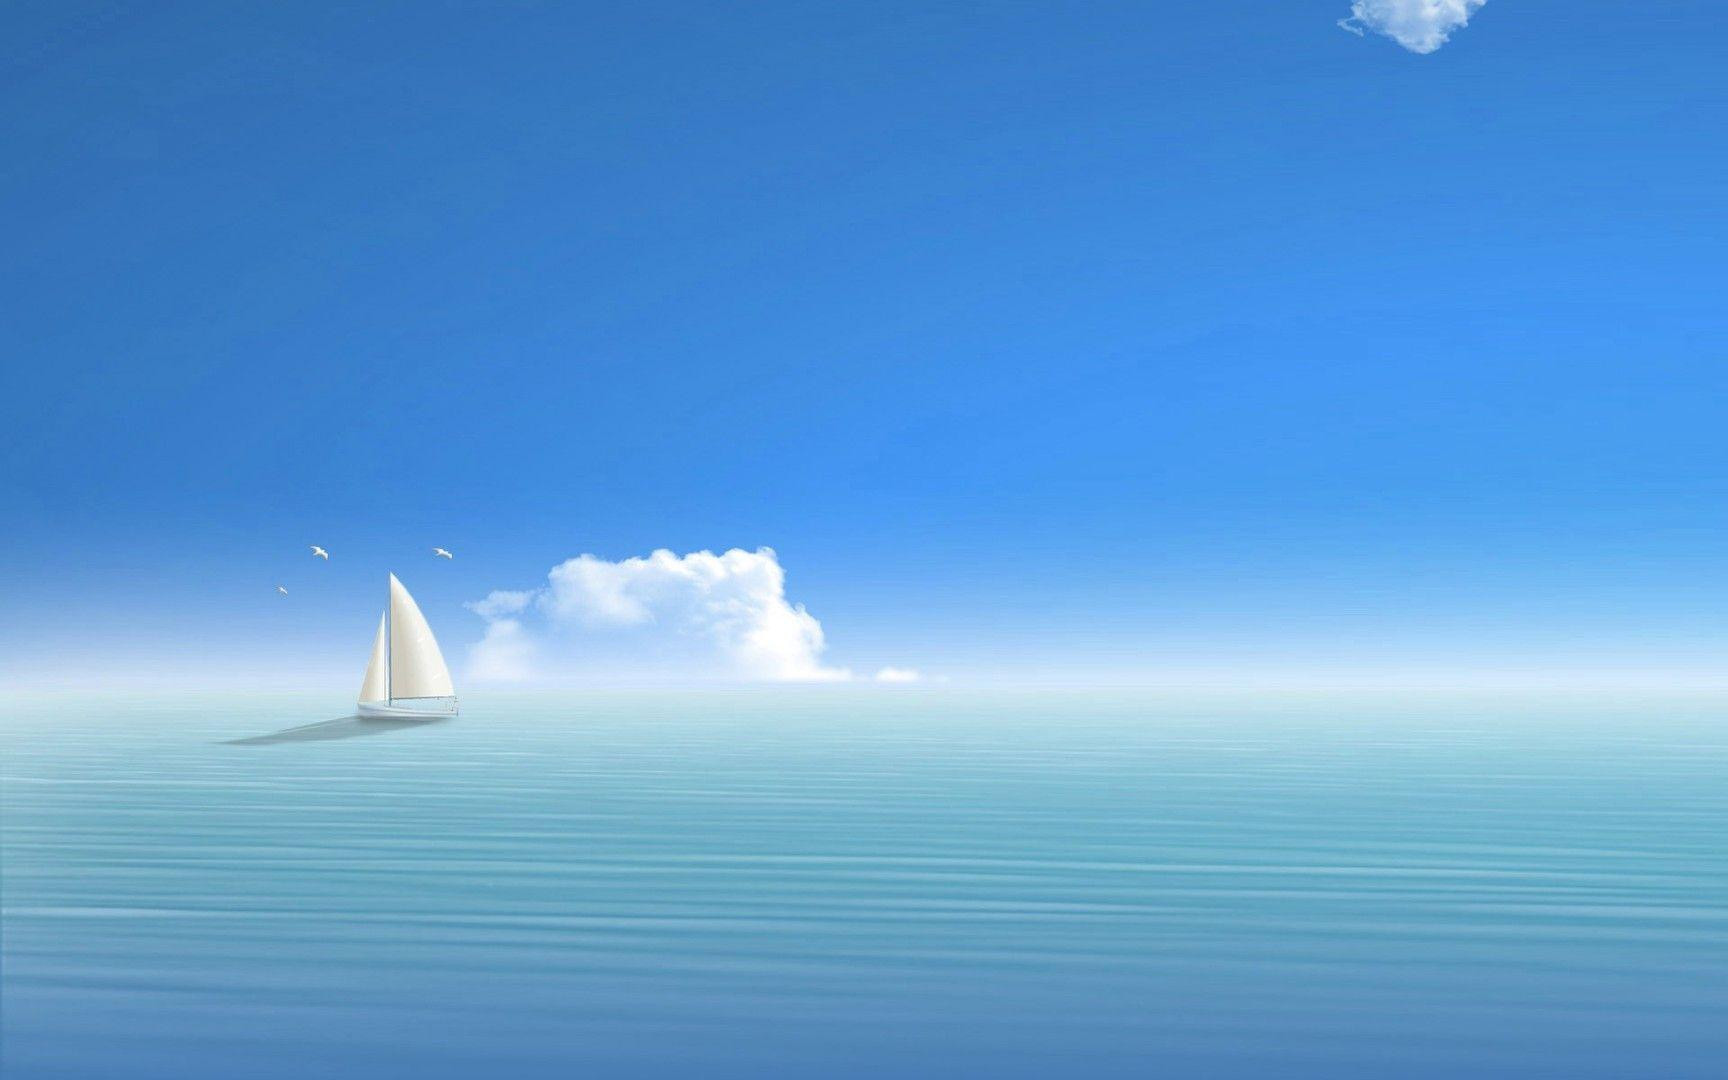 hungry for sailboat wallpaper - photo #14